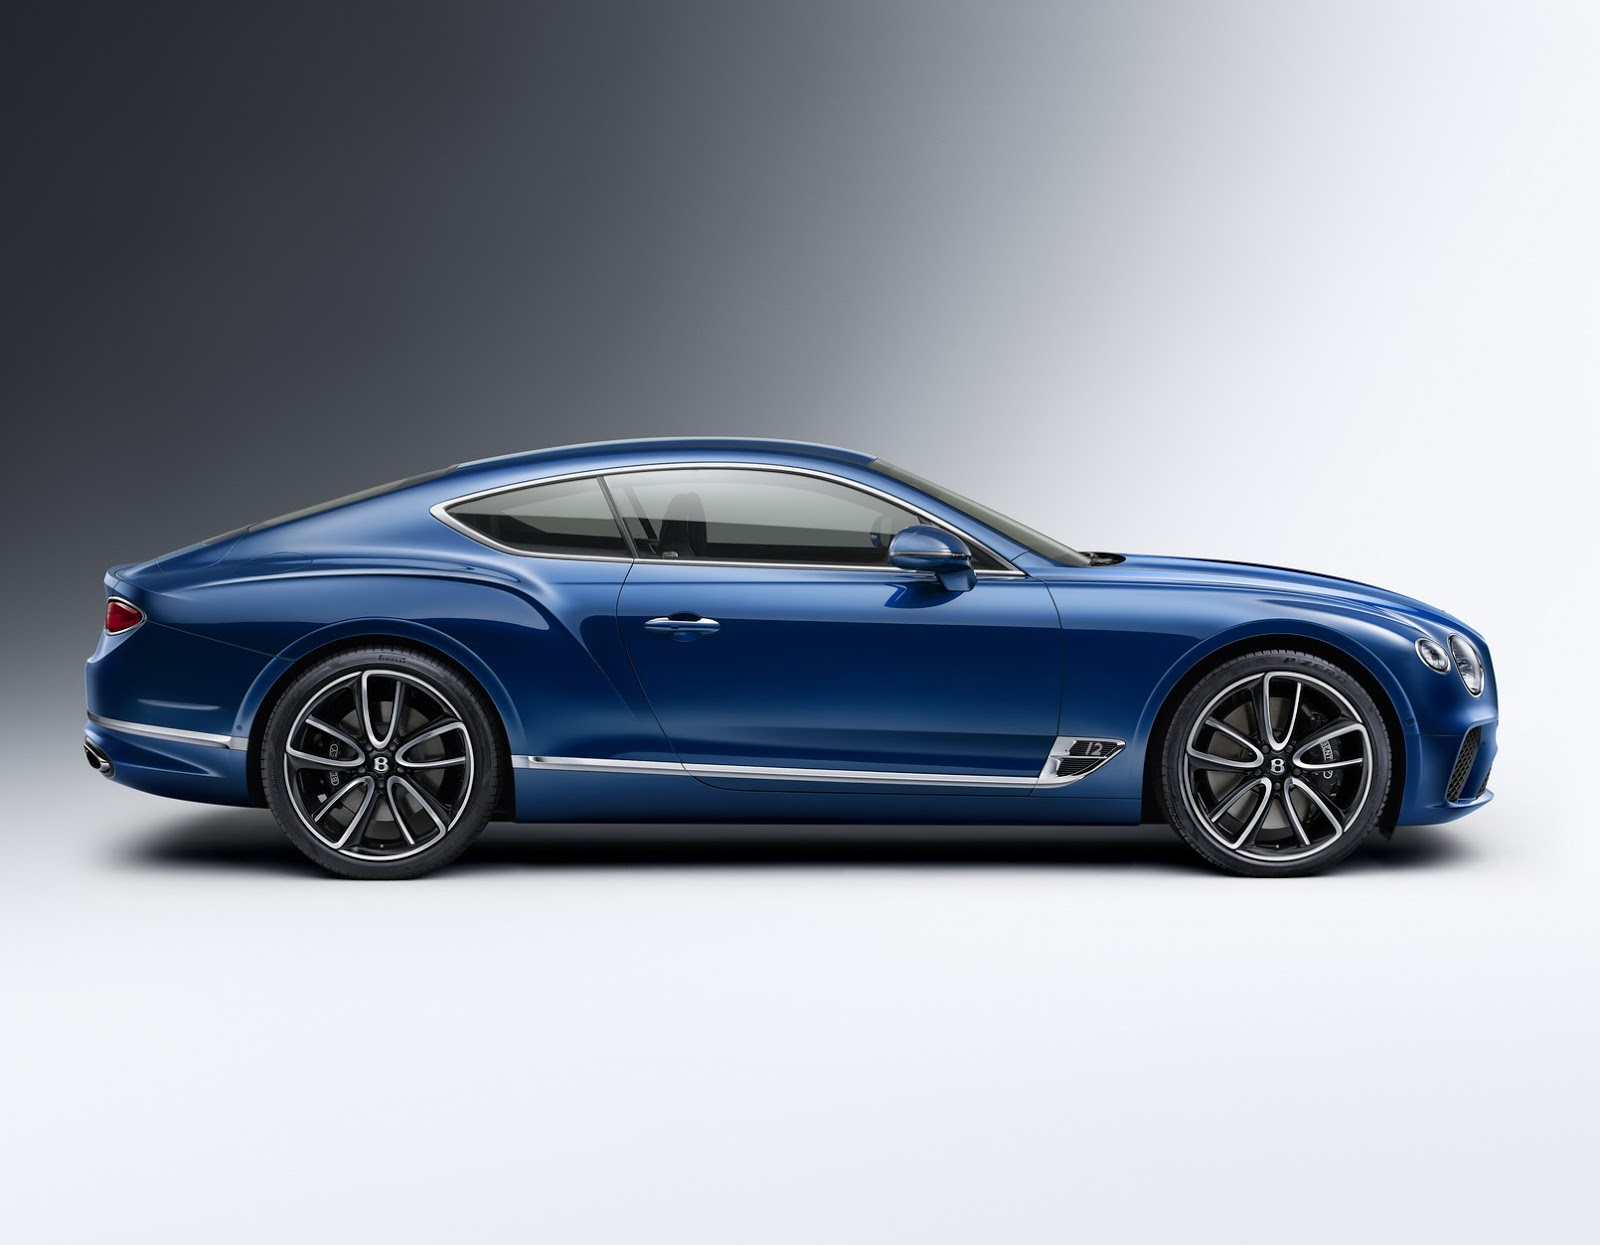 2018 Bentley Continental GT Cars Page 1 Owners Forum